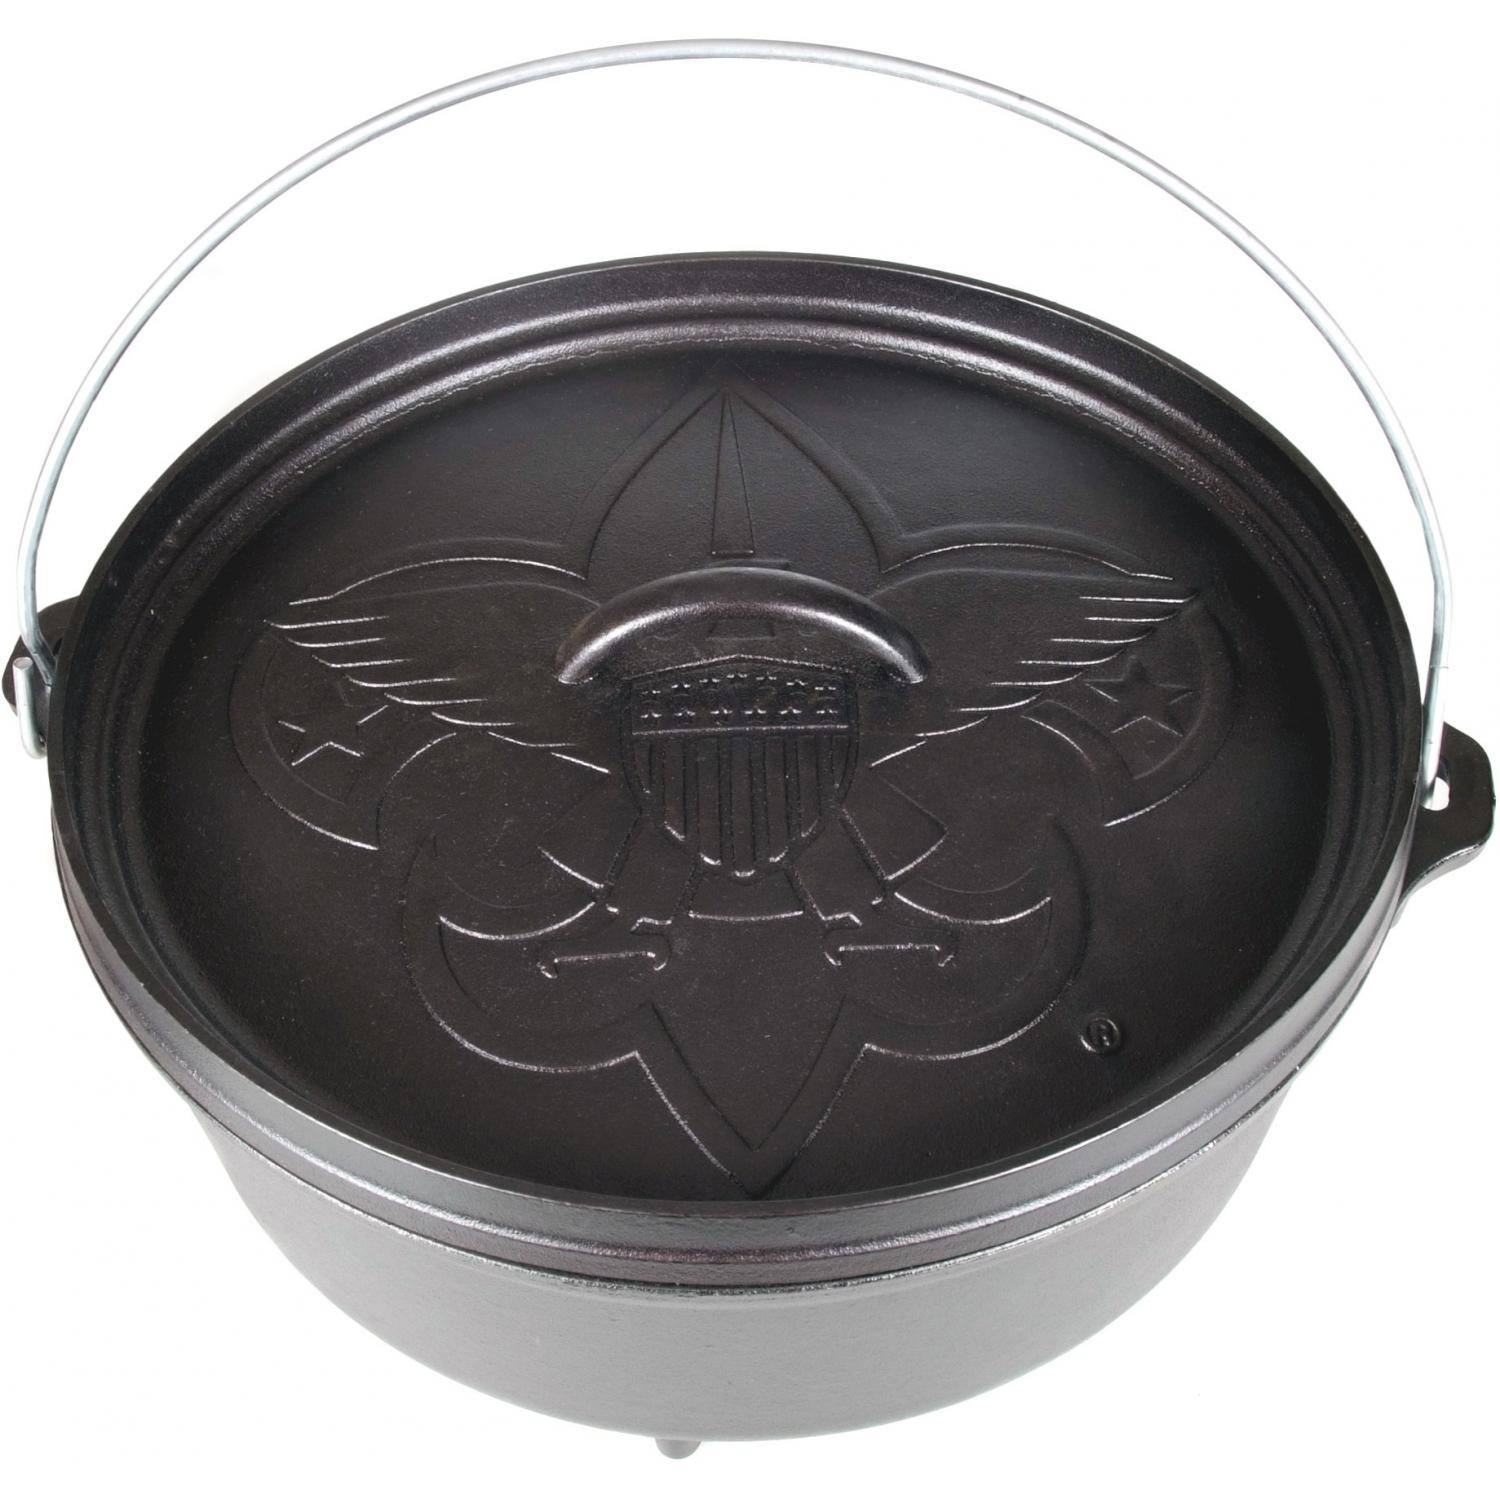 Lodge Dutch Ovens Camping Cast Iron Boy Scouts Of America Series Dutch Oven - L12CO3BS